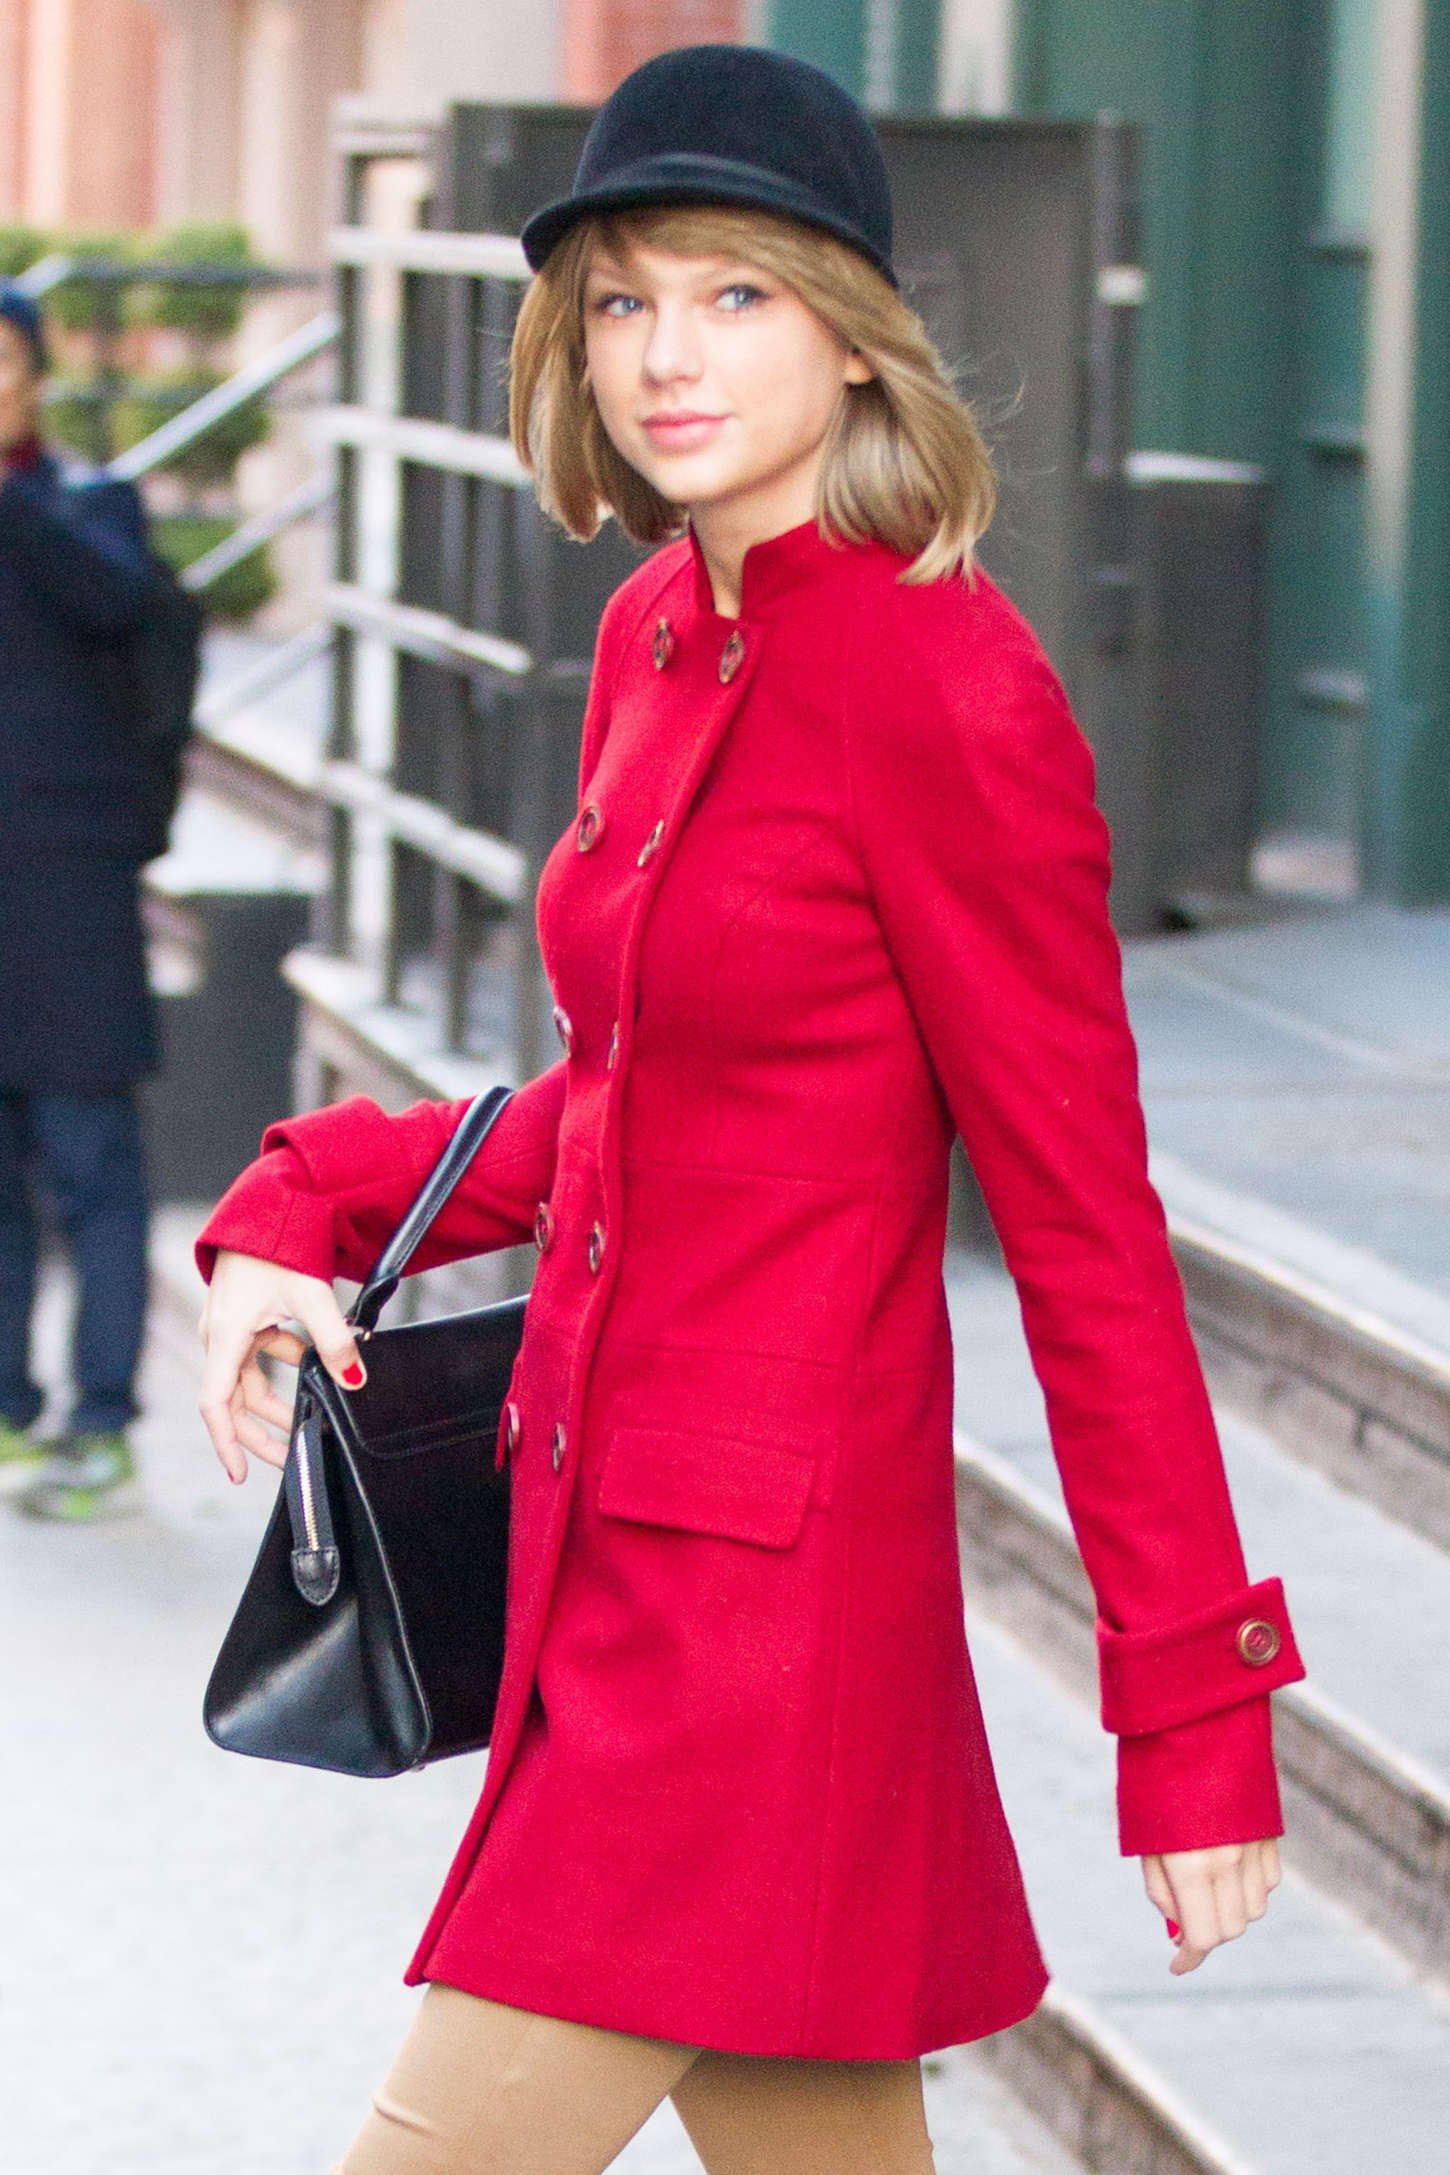 Taylor Swift in Red Coat Out in NYC